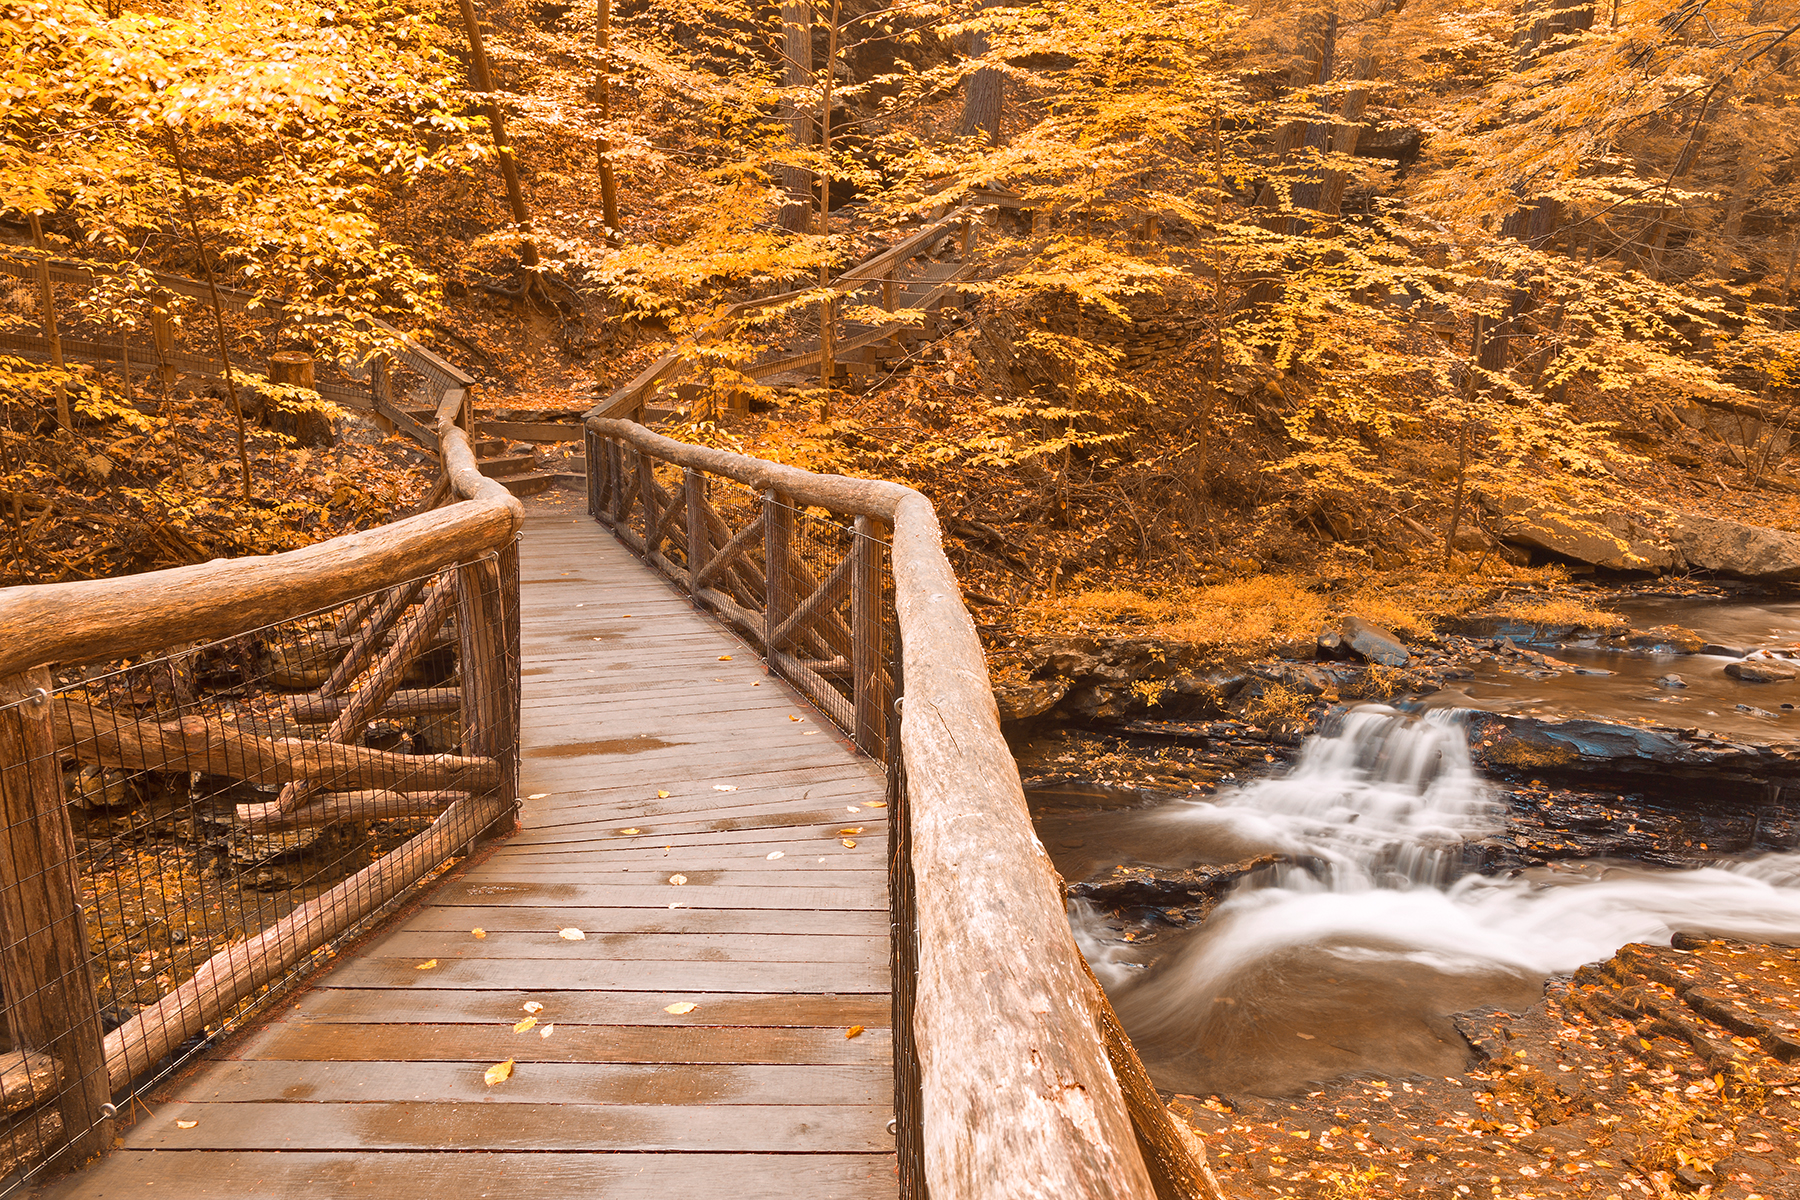 Gold Autumn Boardwalk Bridge, Adventure, Recreational, Stairs, Staircase, HQ Photo